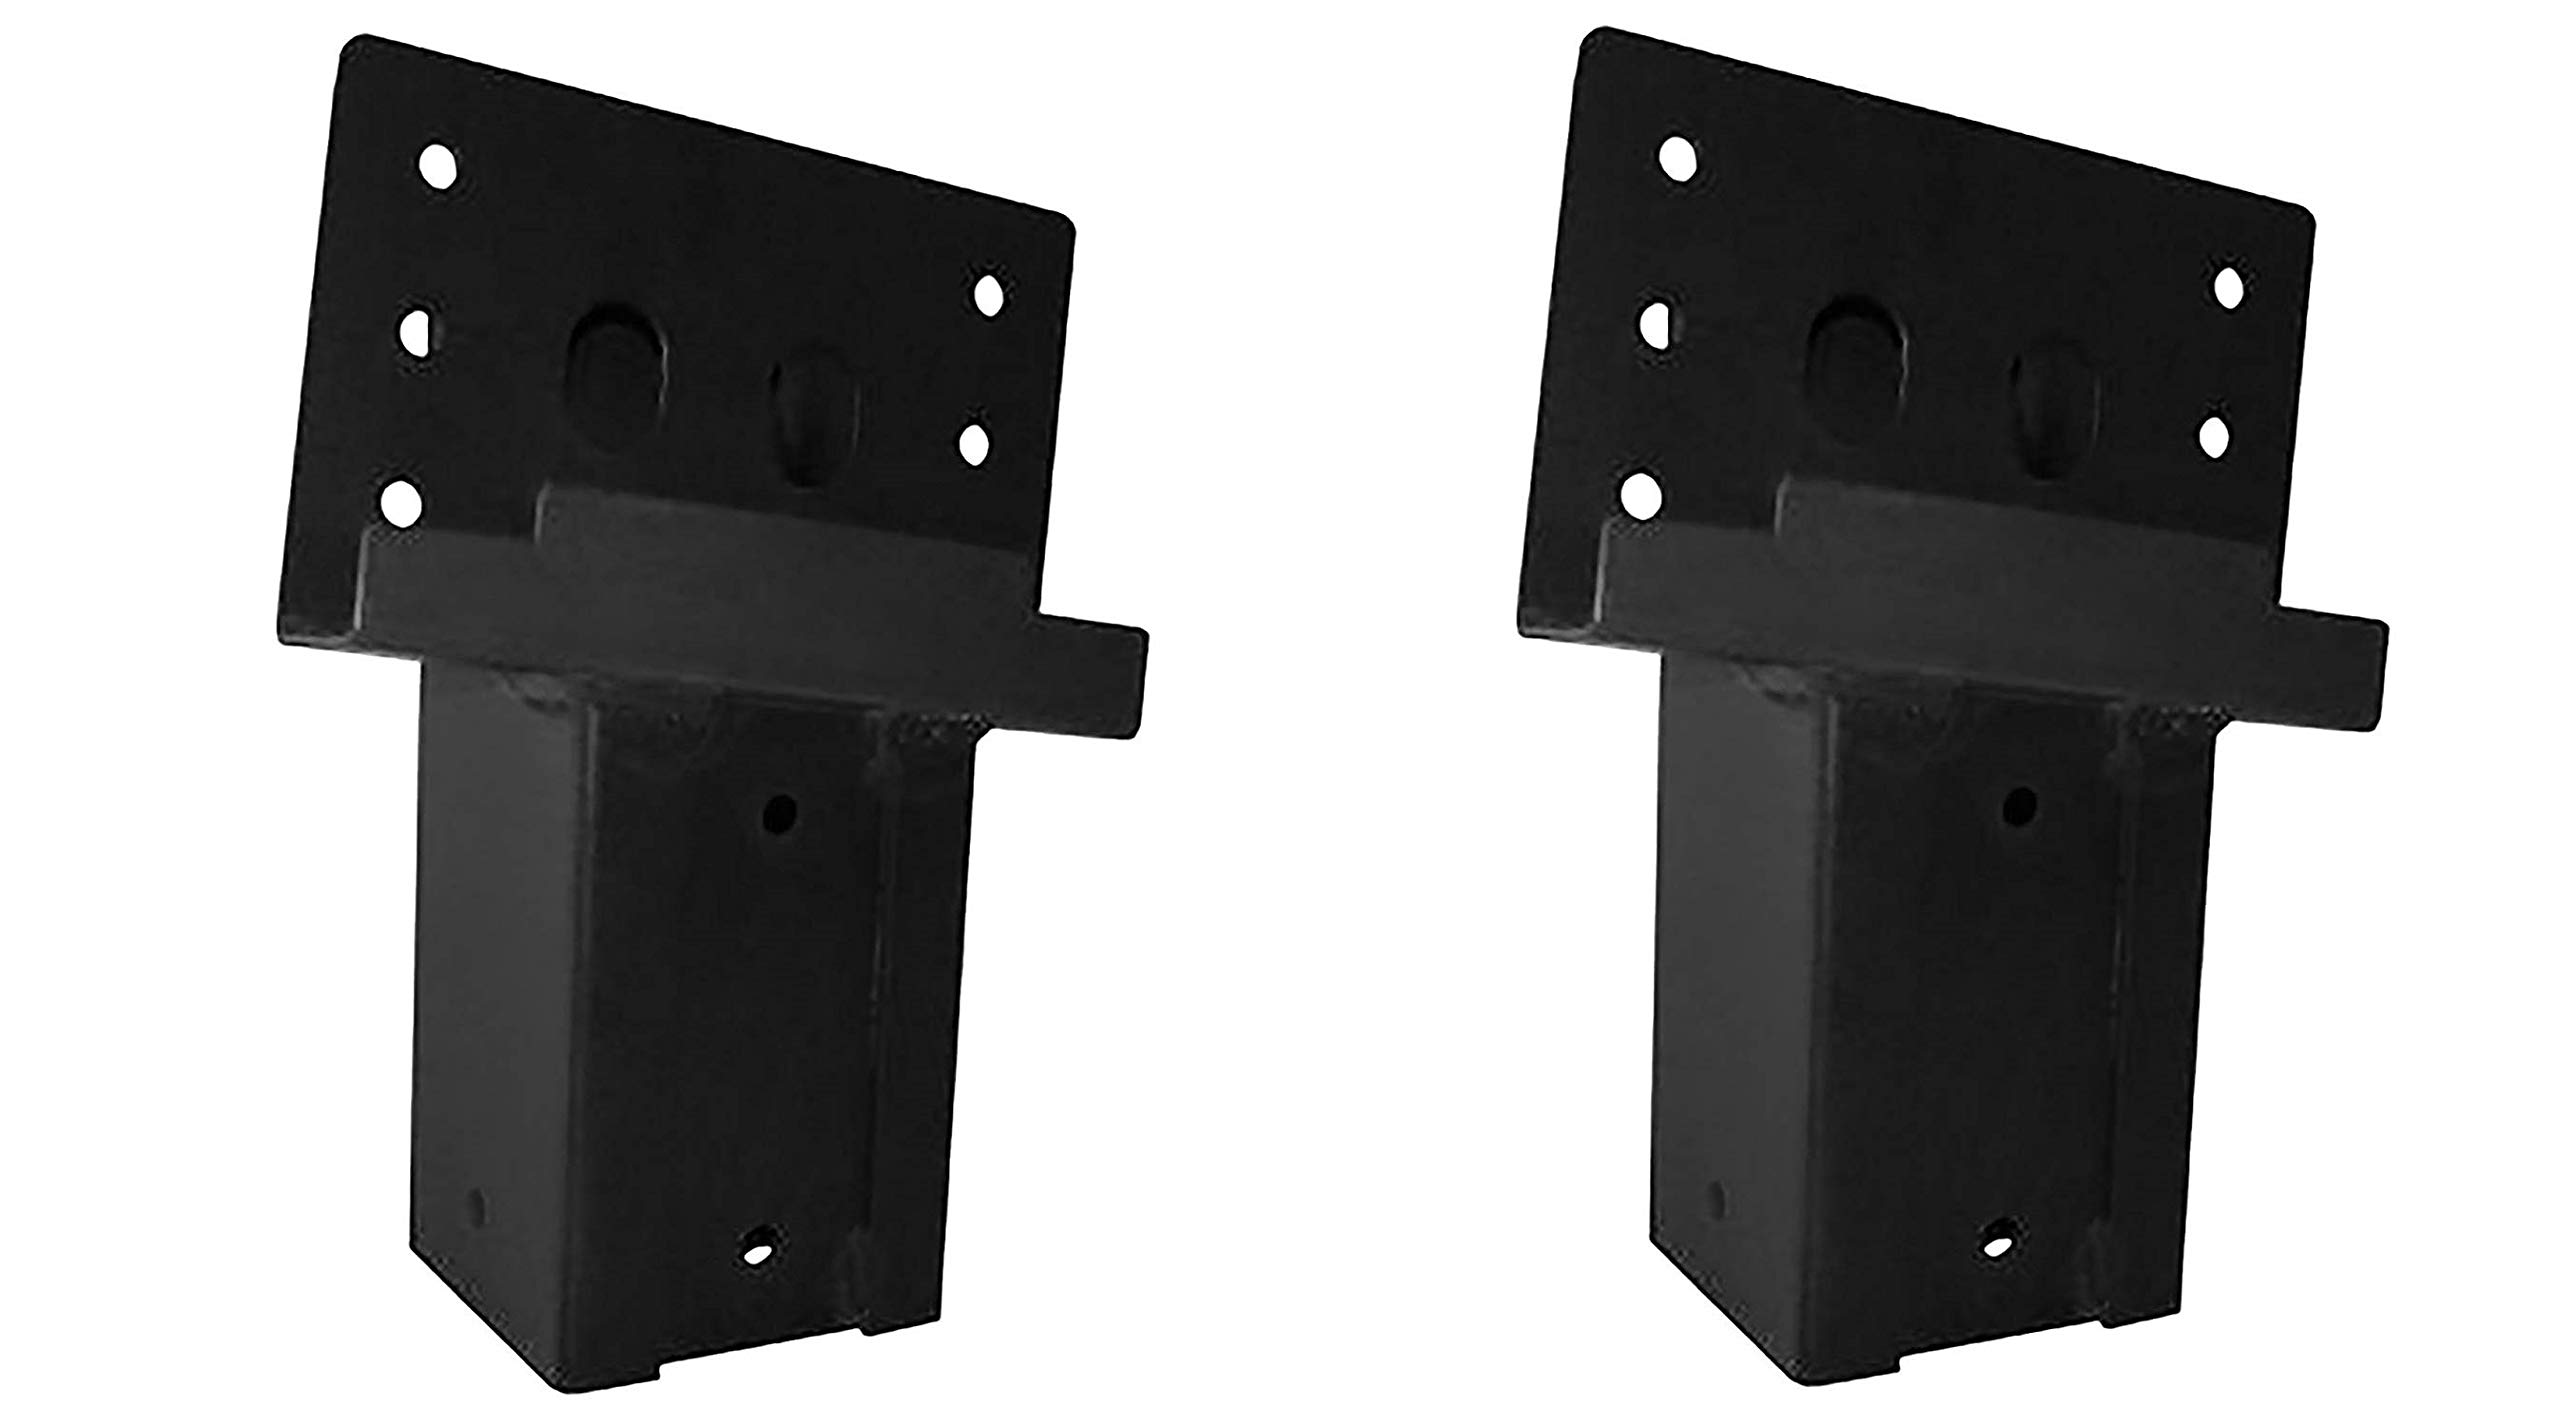 Elevators 4x4 Brackets for Deer Blinds, Playhouses, Swing Sets, Tree Houses. Made in The USA with Premium Construction Grade Steel. (Set of 4) (2 X Pack of 4)